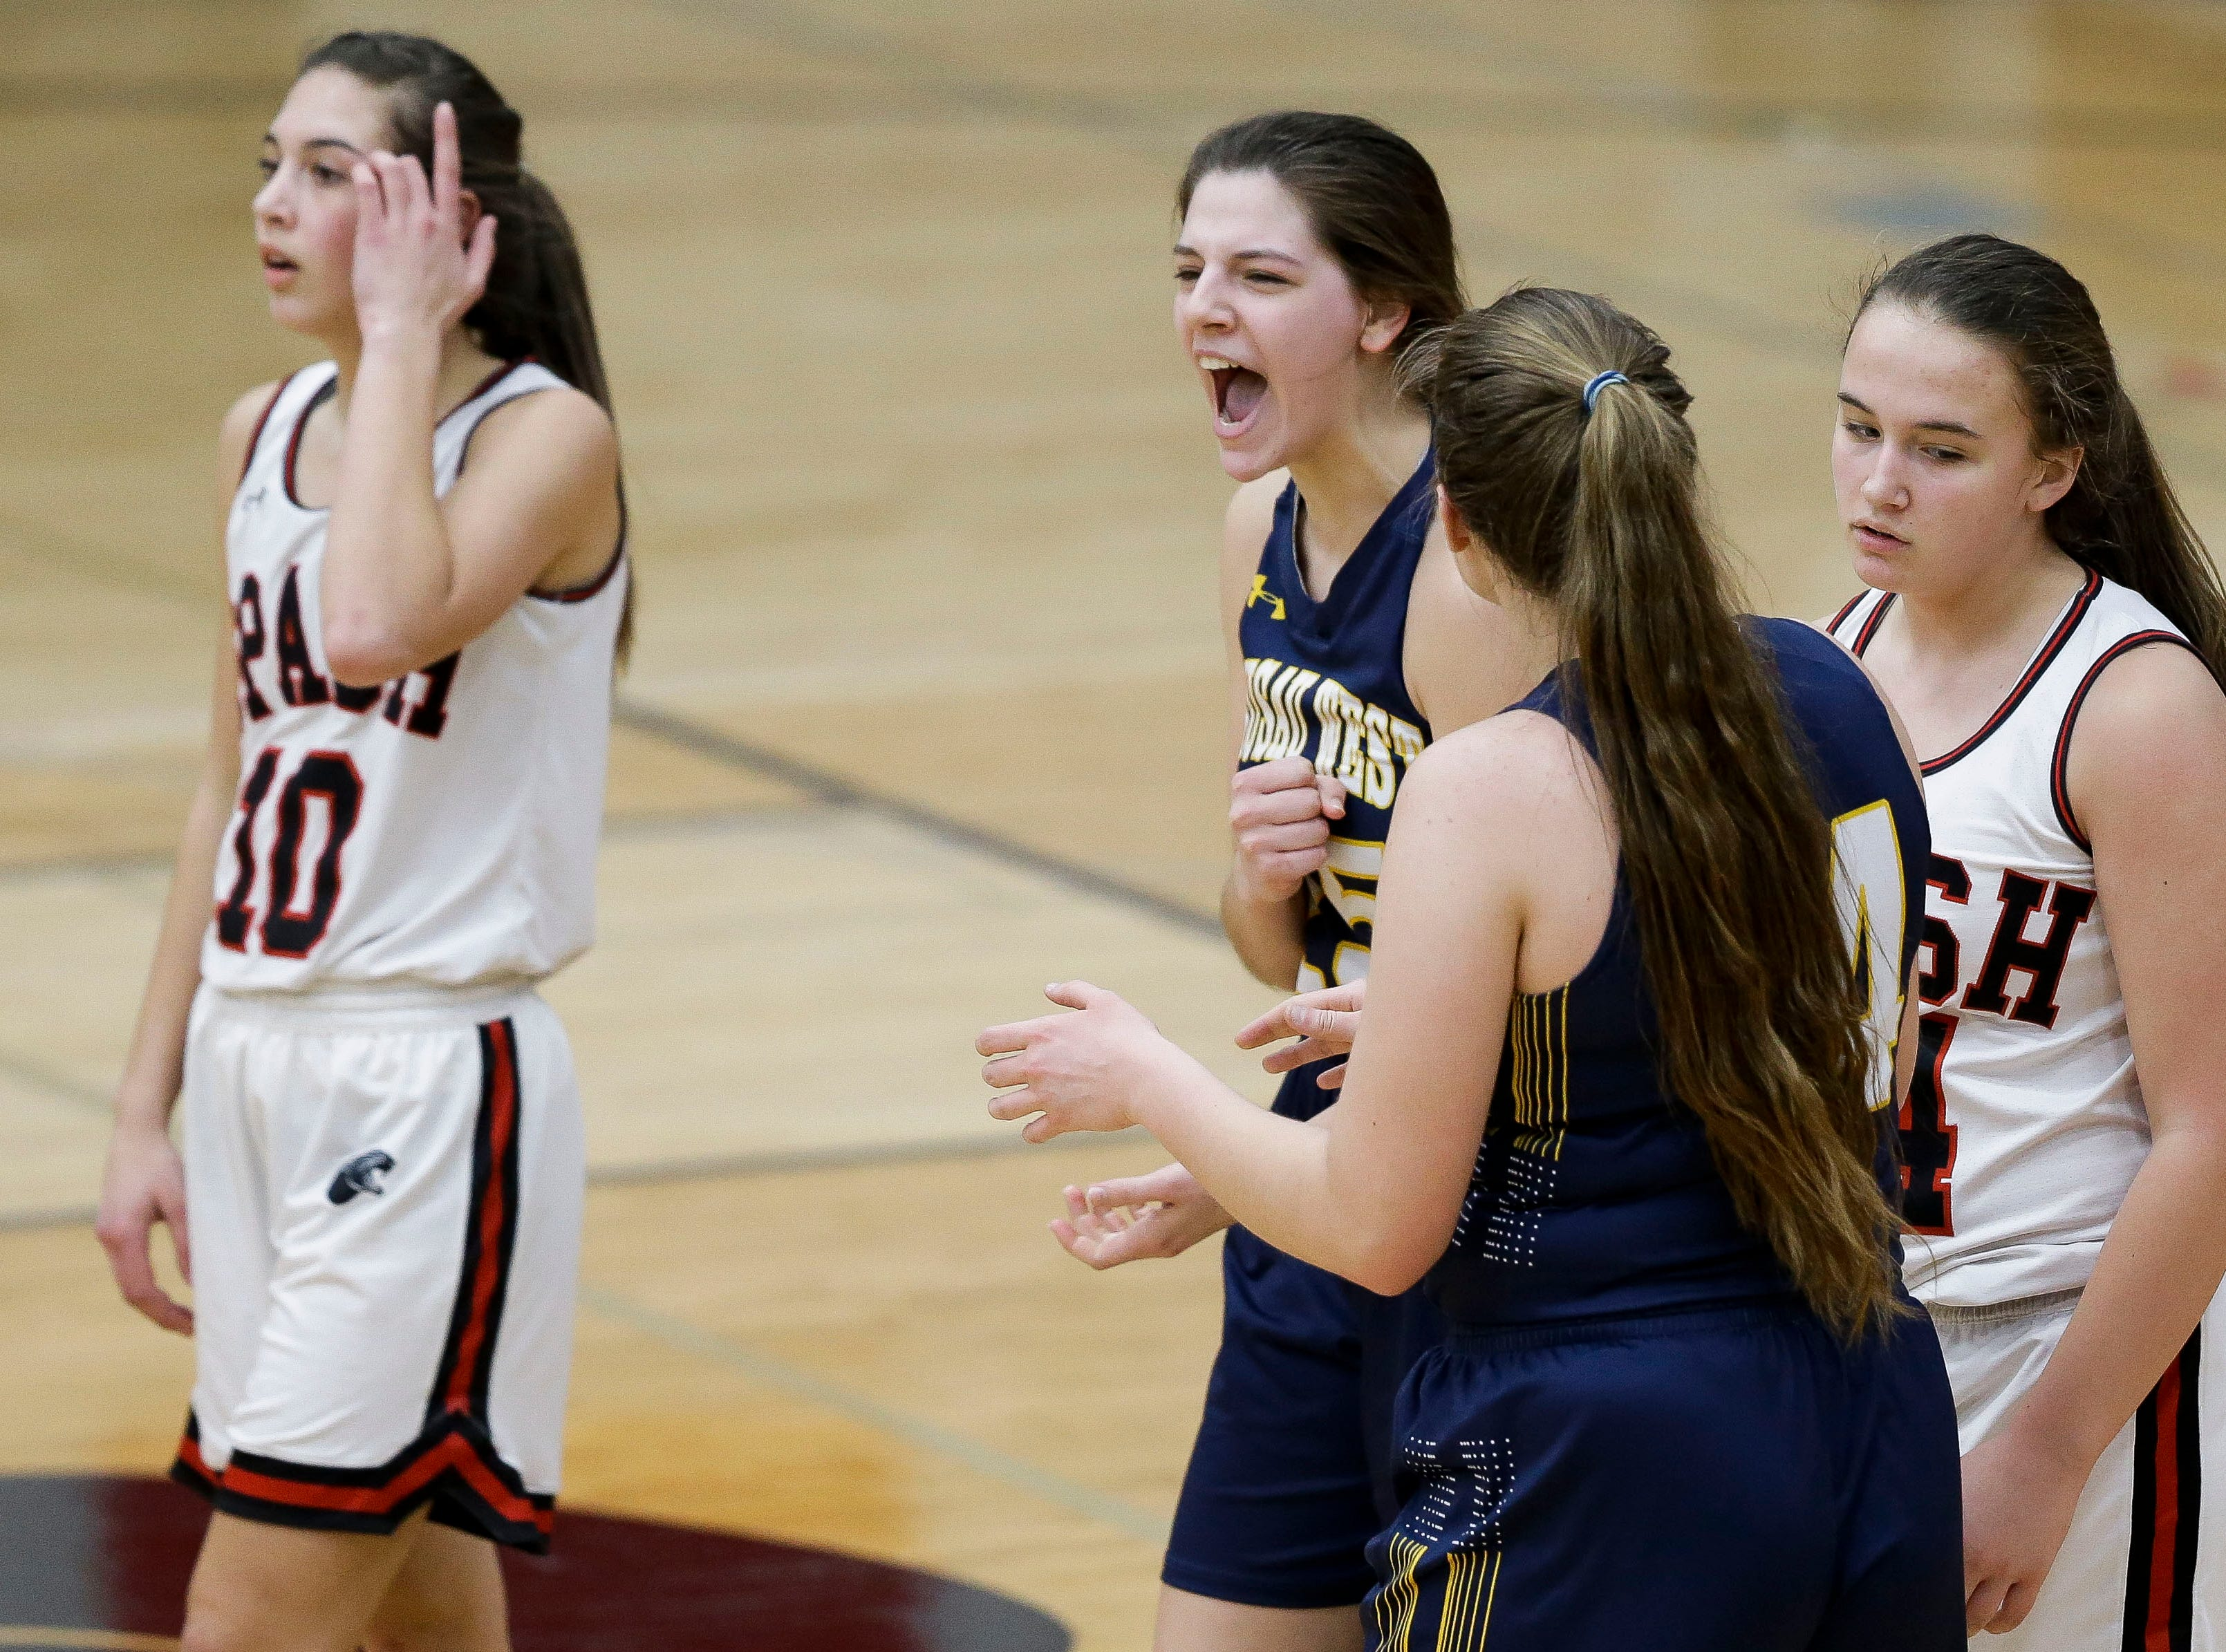 Wausau West's Tess Hauer (25) reacts after being fouled on a made basket against SPASH on Thursday, February 14, 2019, at SPASH in Stevens Point, Wis.Tork Mason/USA TODAY NETWORK-Wisconsin